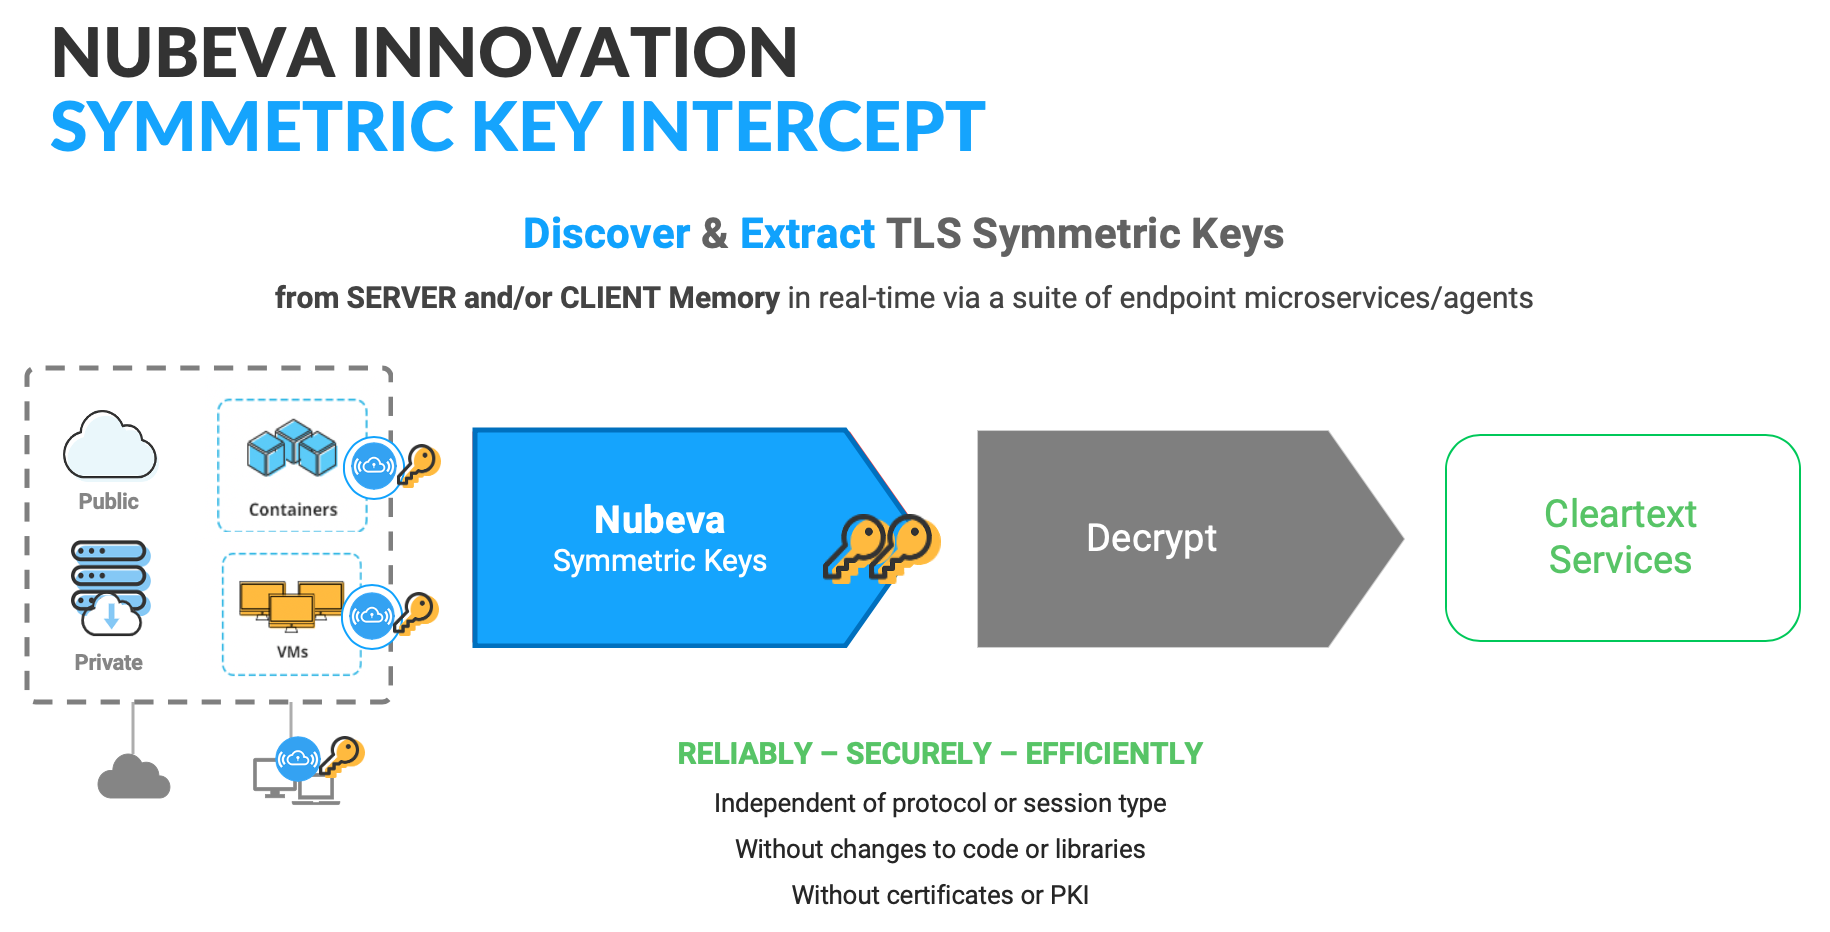 Symmetric Key Intercept